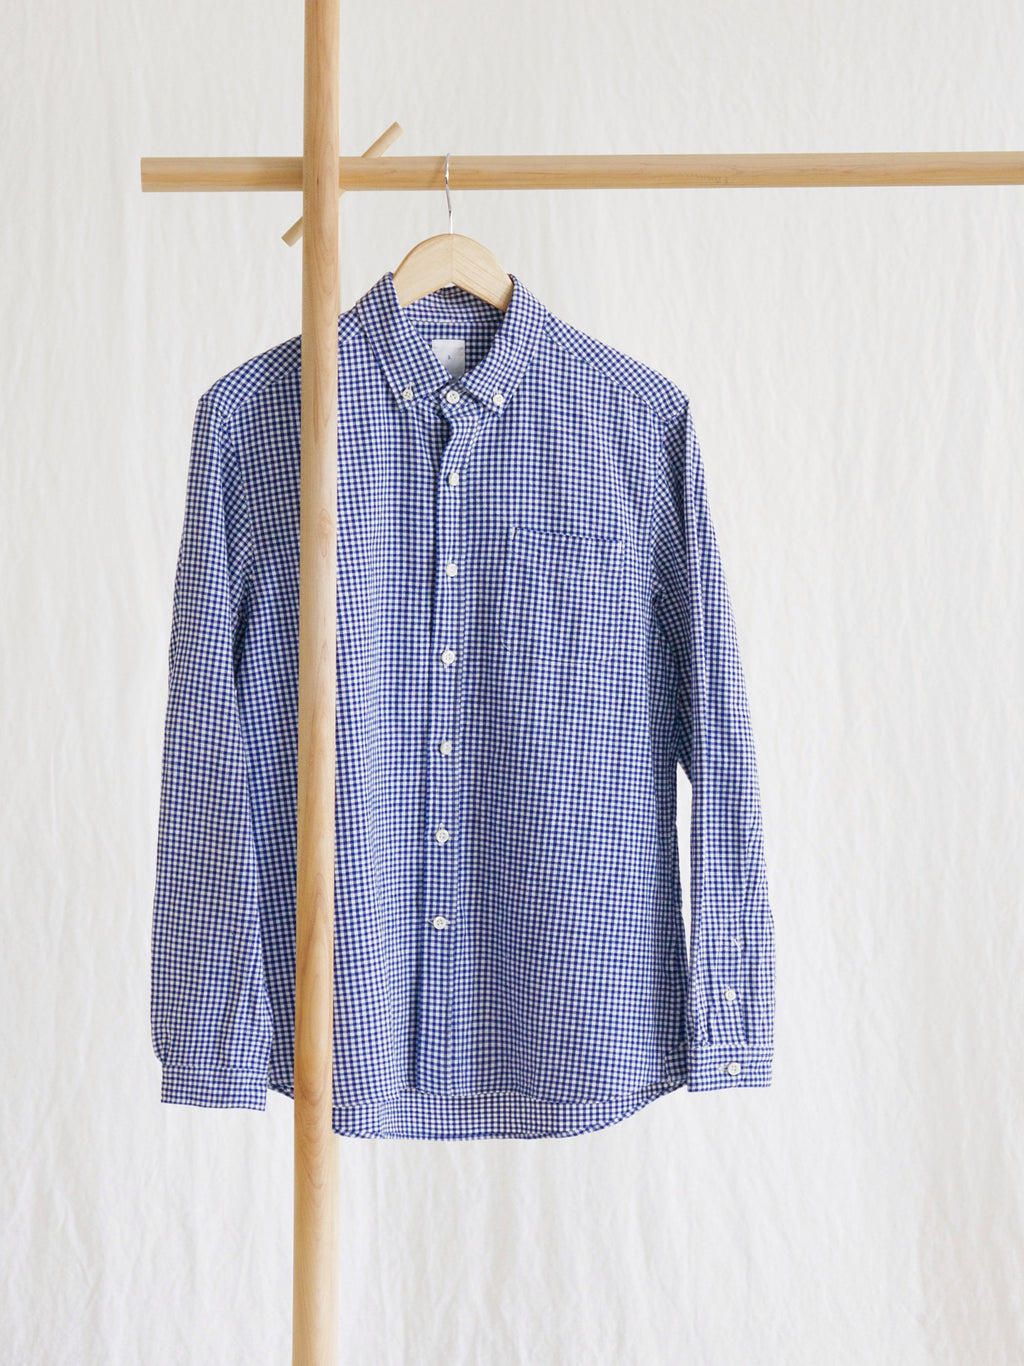 Namu Shop - Maillot Sunset Gingham BD Shirt - Blue (Women's)